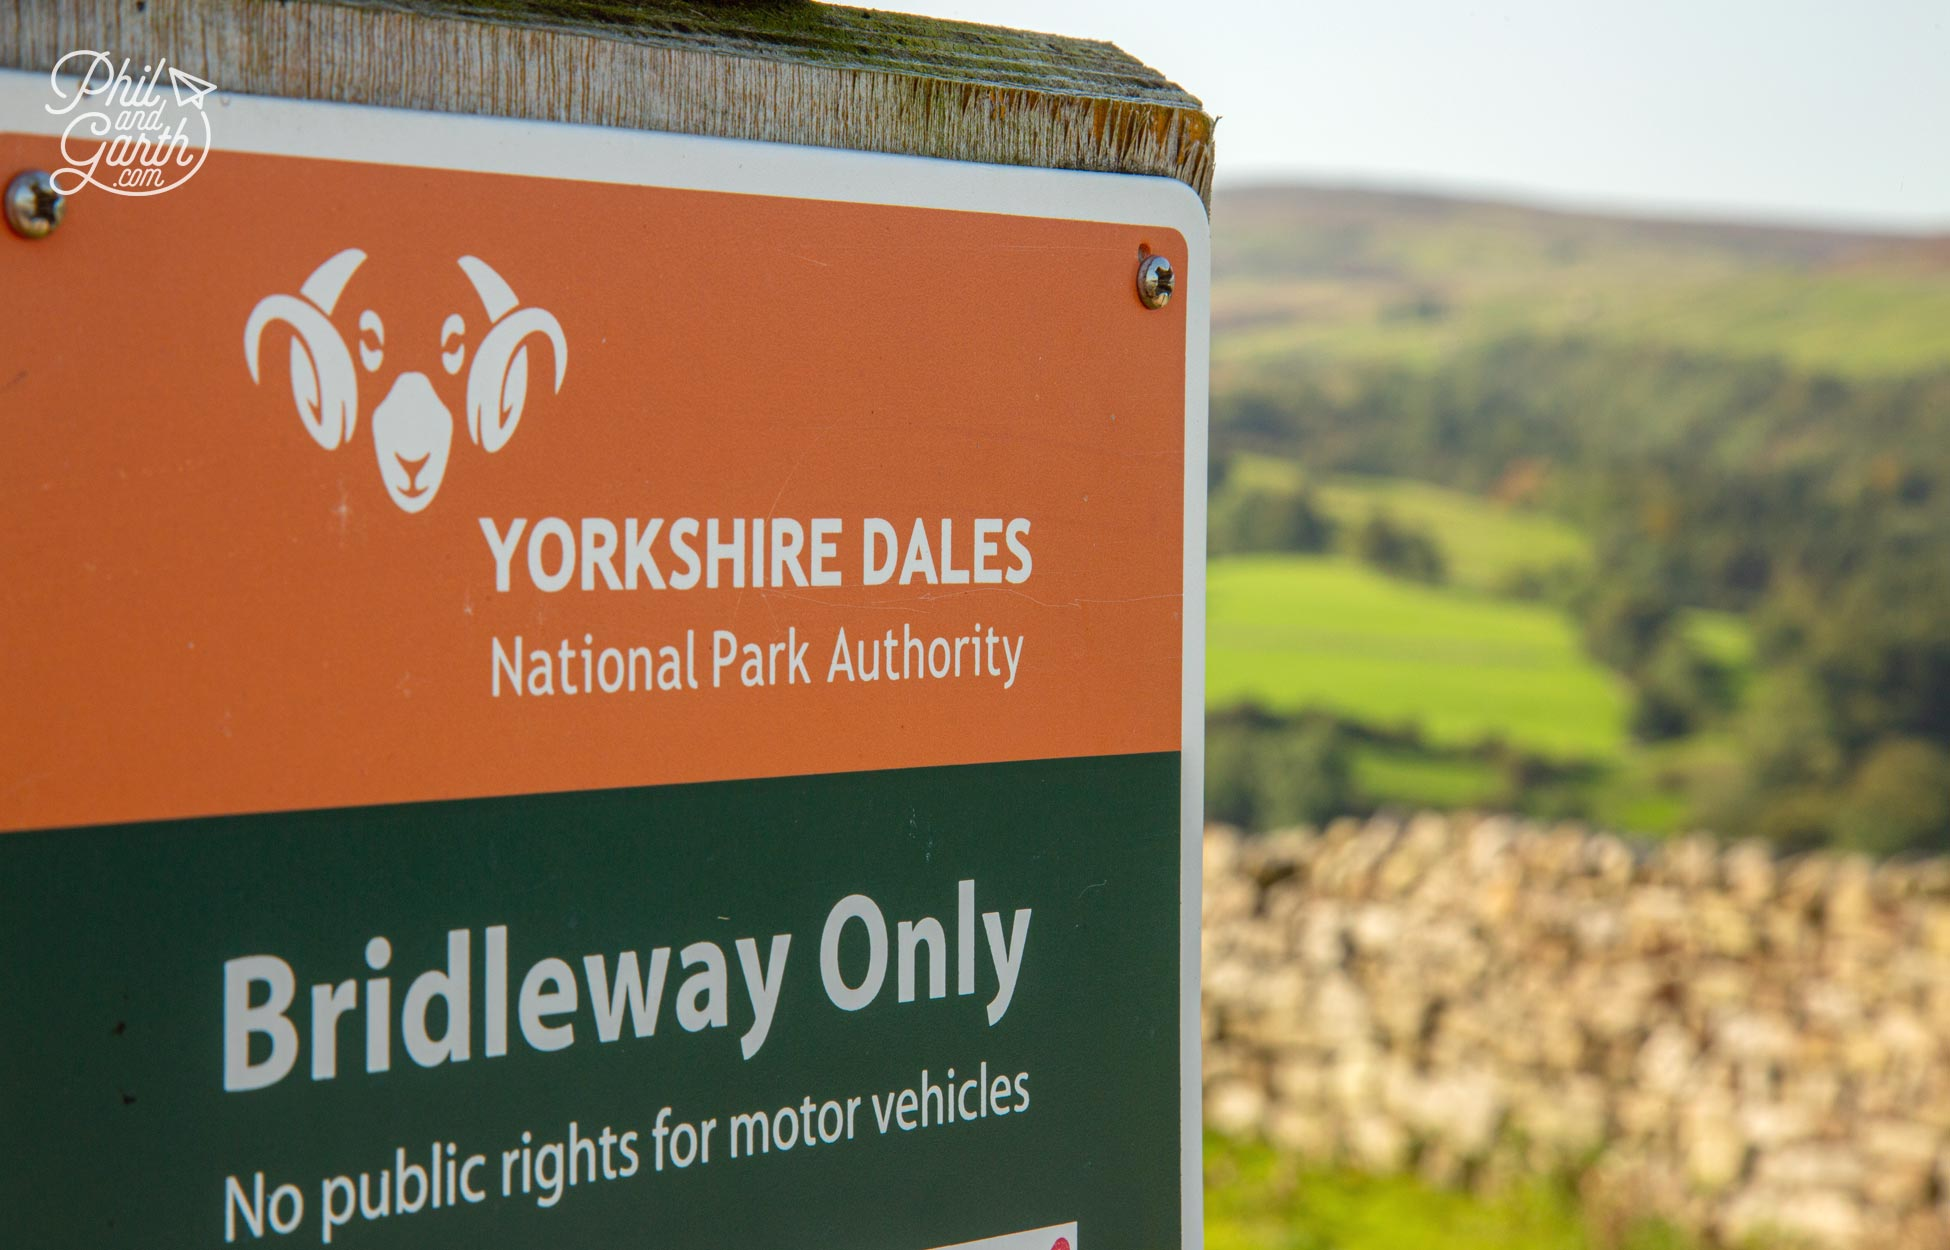 Swaledale sheep feature as the symbol of The Yorkshire Dales National Park